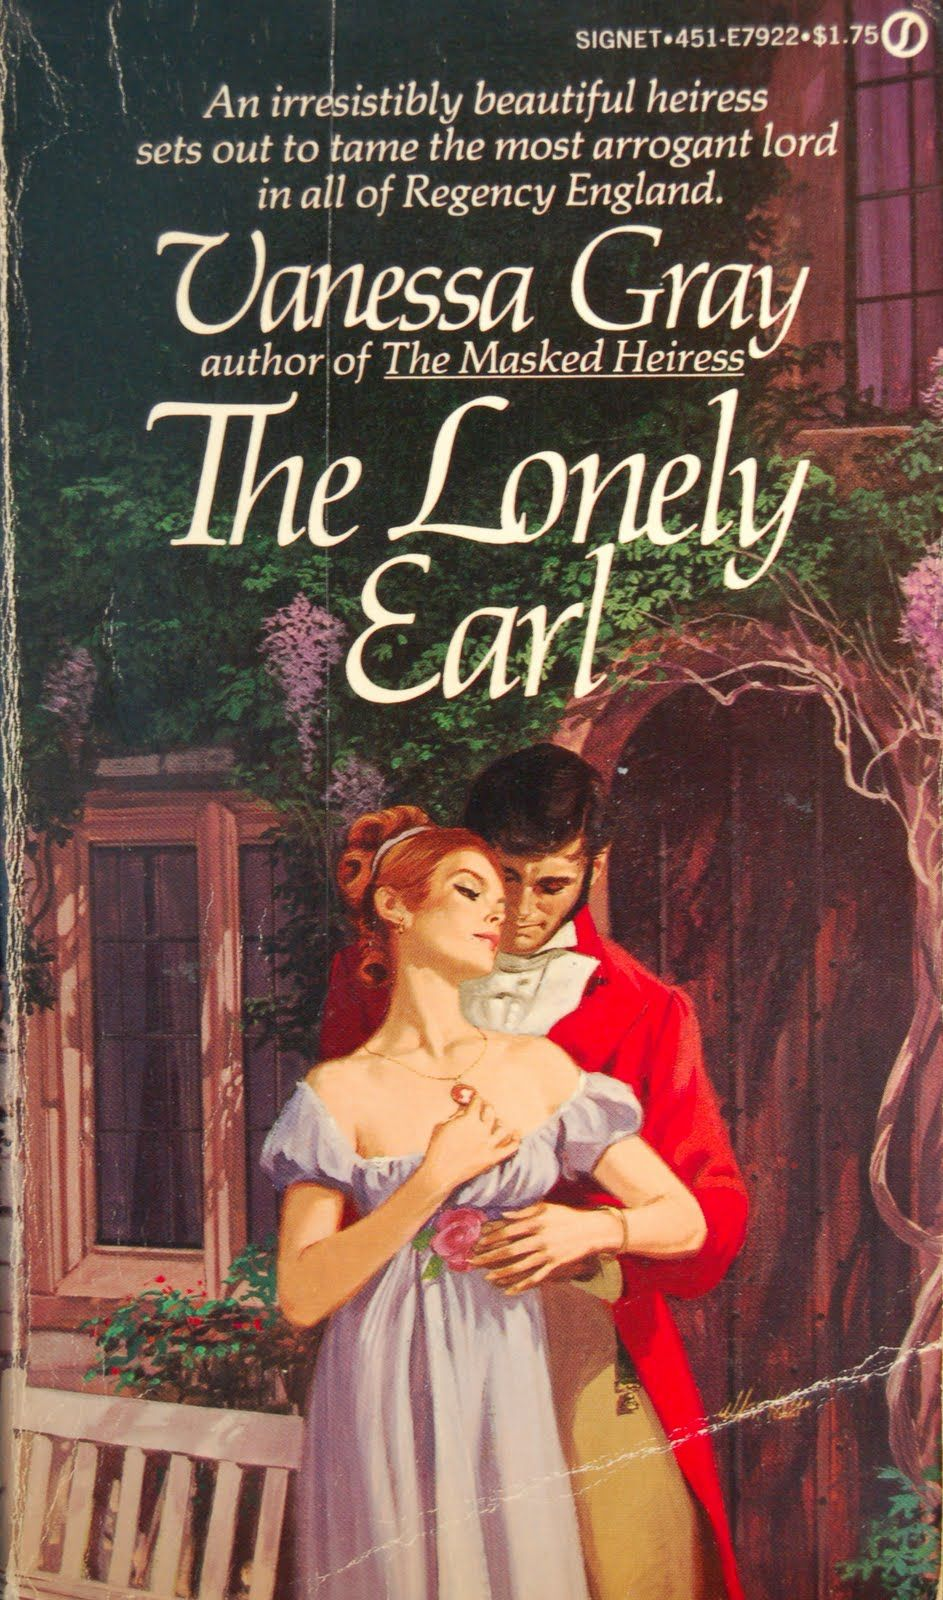 The Lonely Earl Vanessa Gray Historical Romance Book Covers Romance Book Covers Book Cover